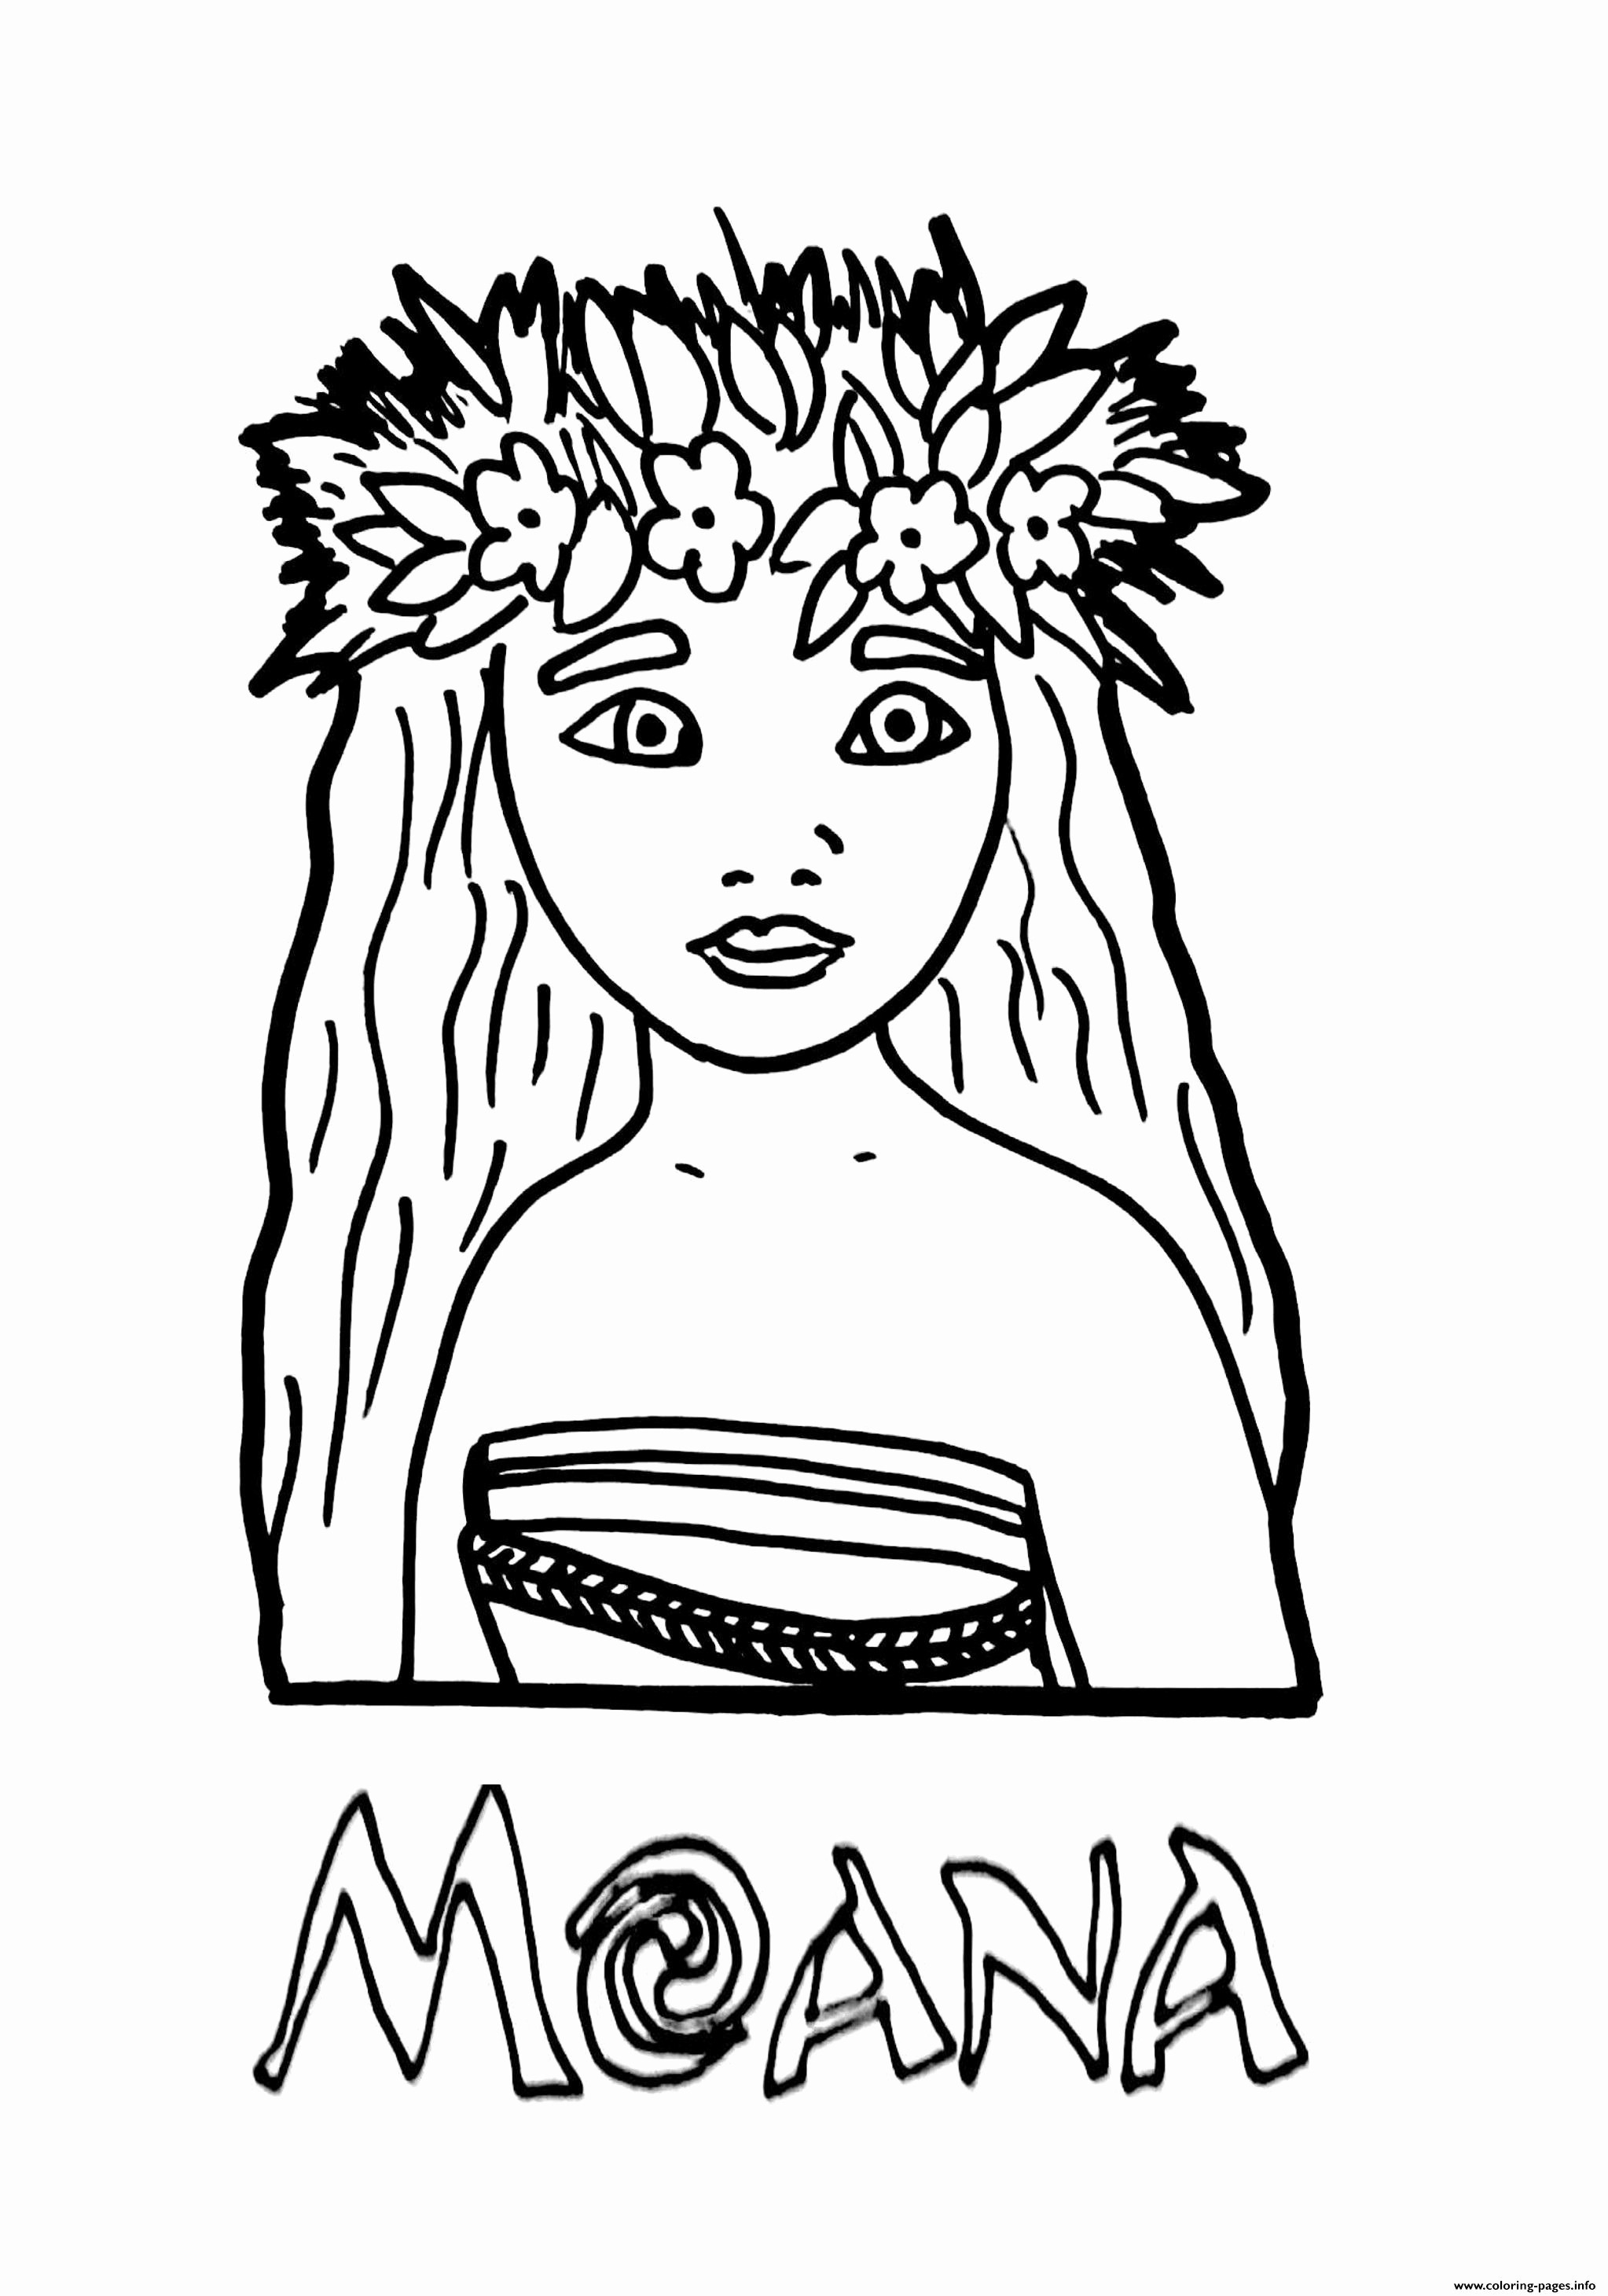 Marine Coloring Pages  Printable 11g - Save it to your computer